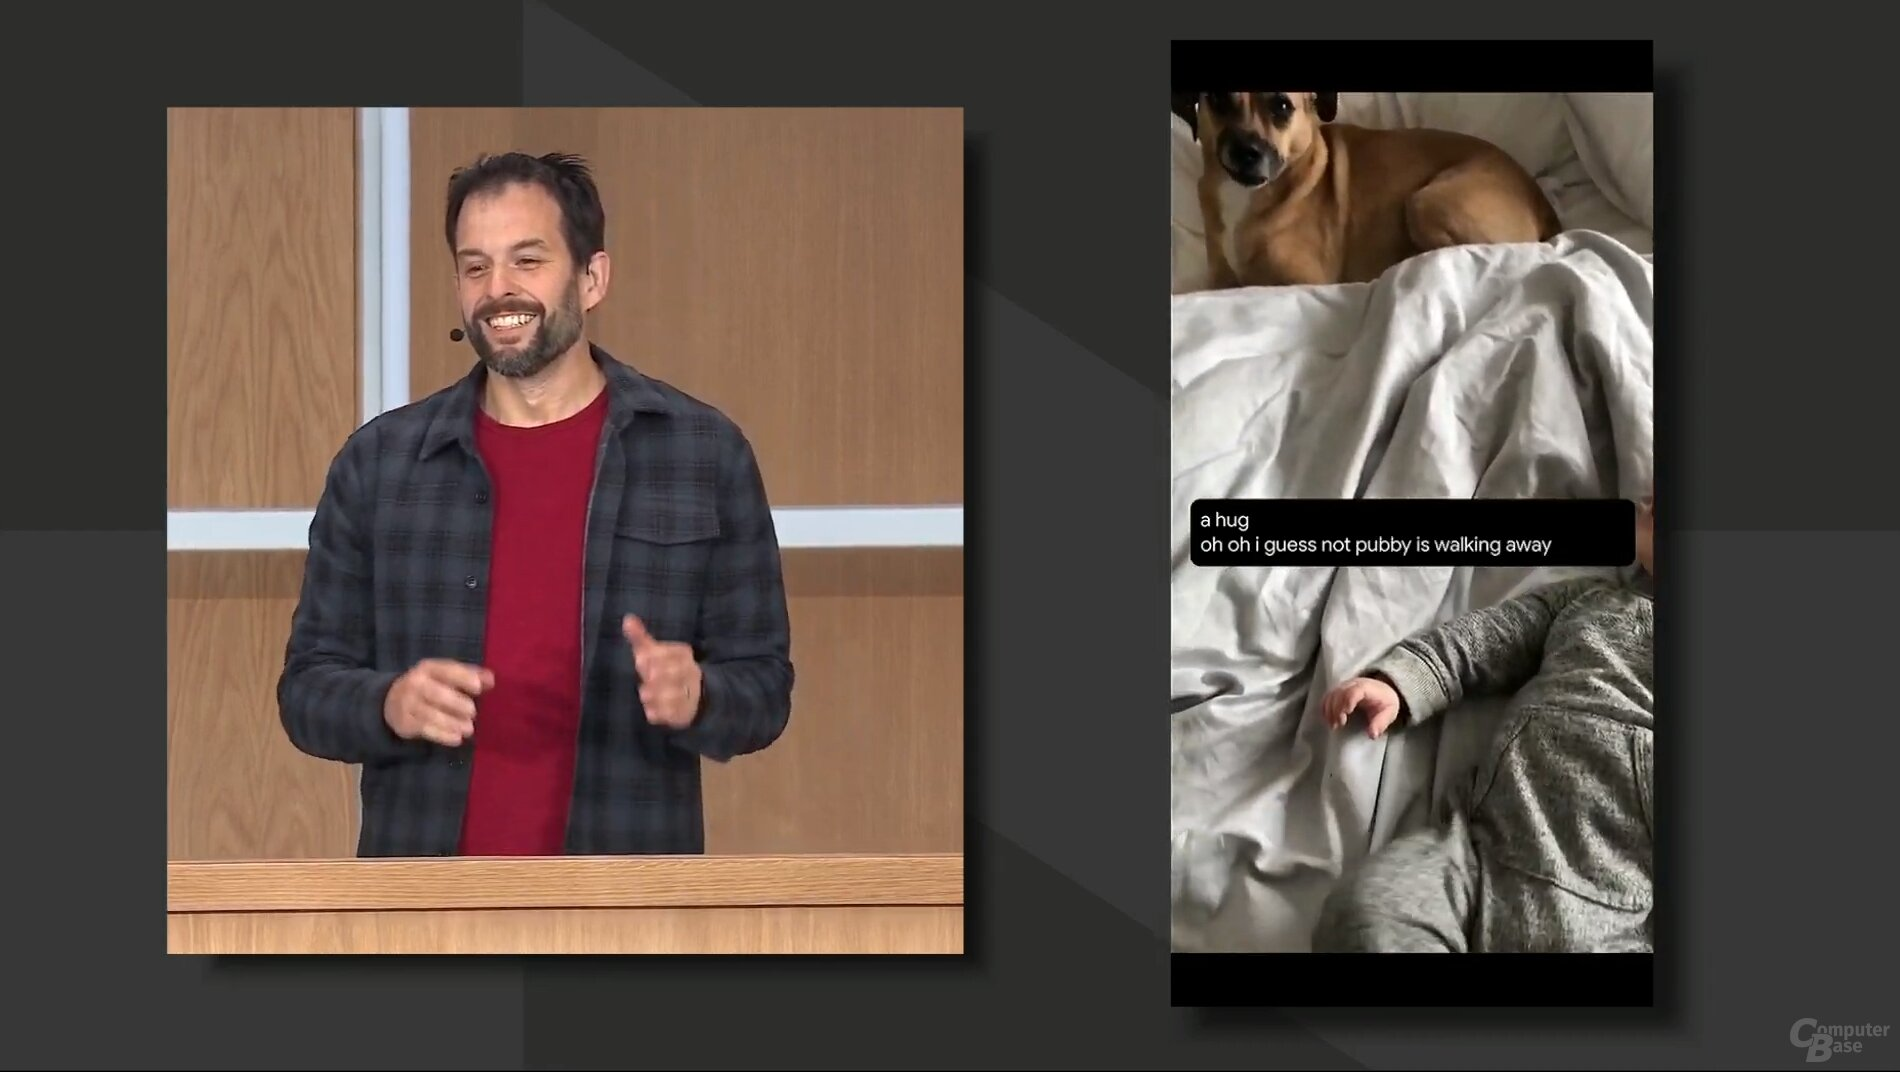 Live Captions in Android 10